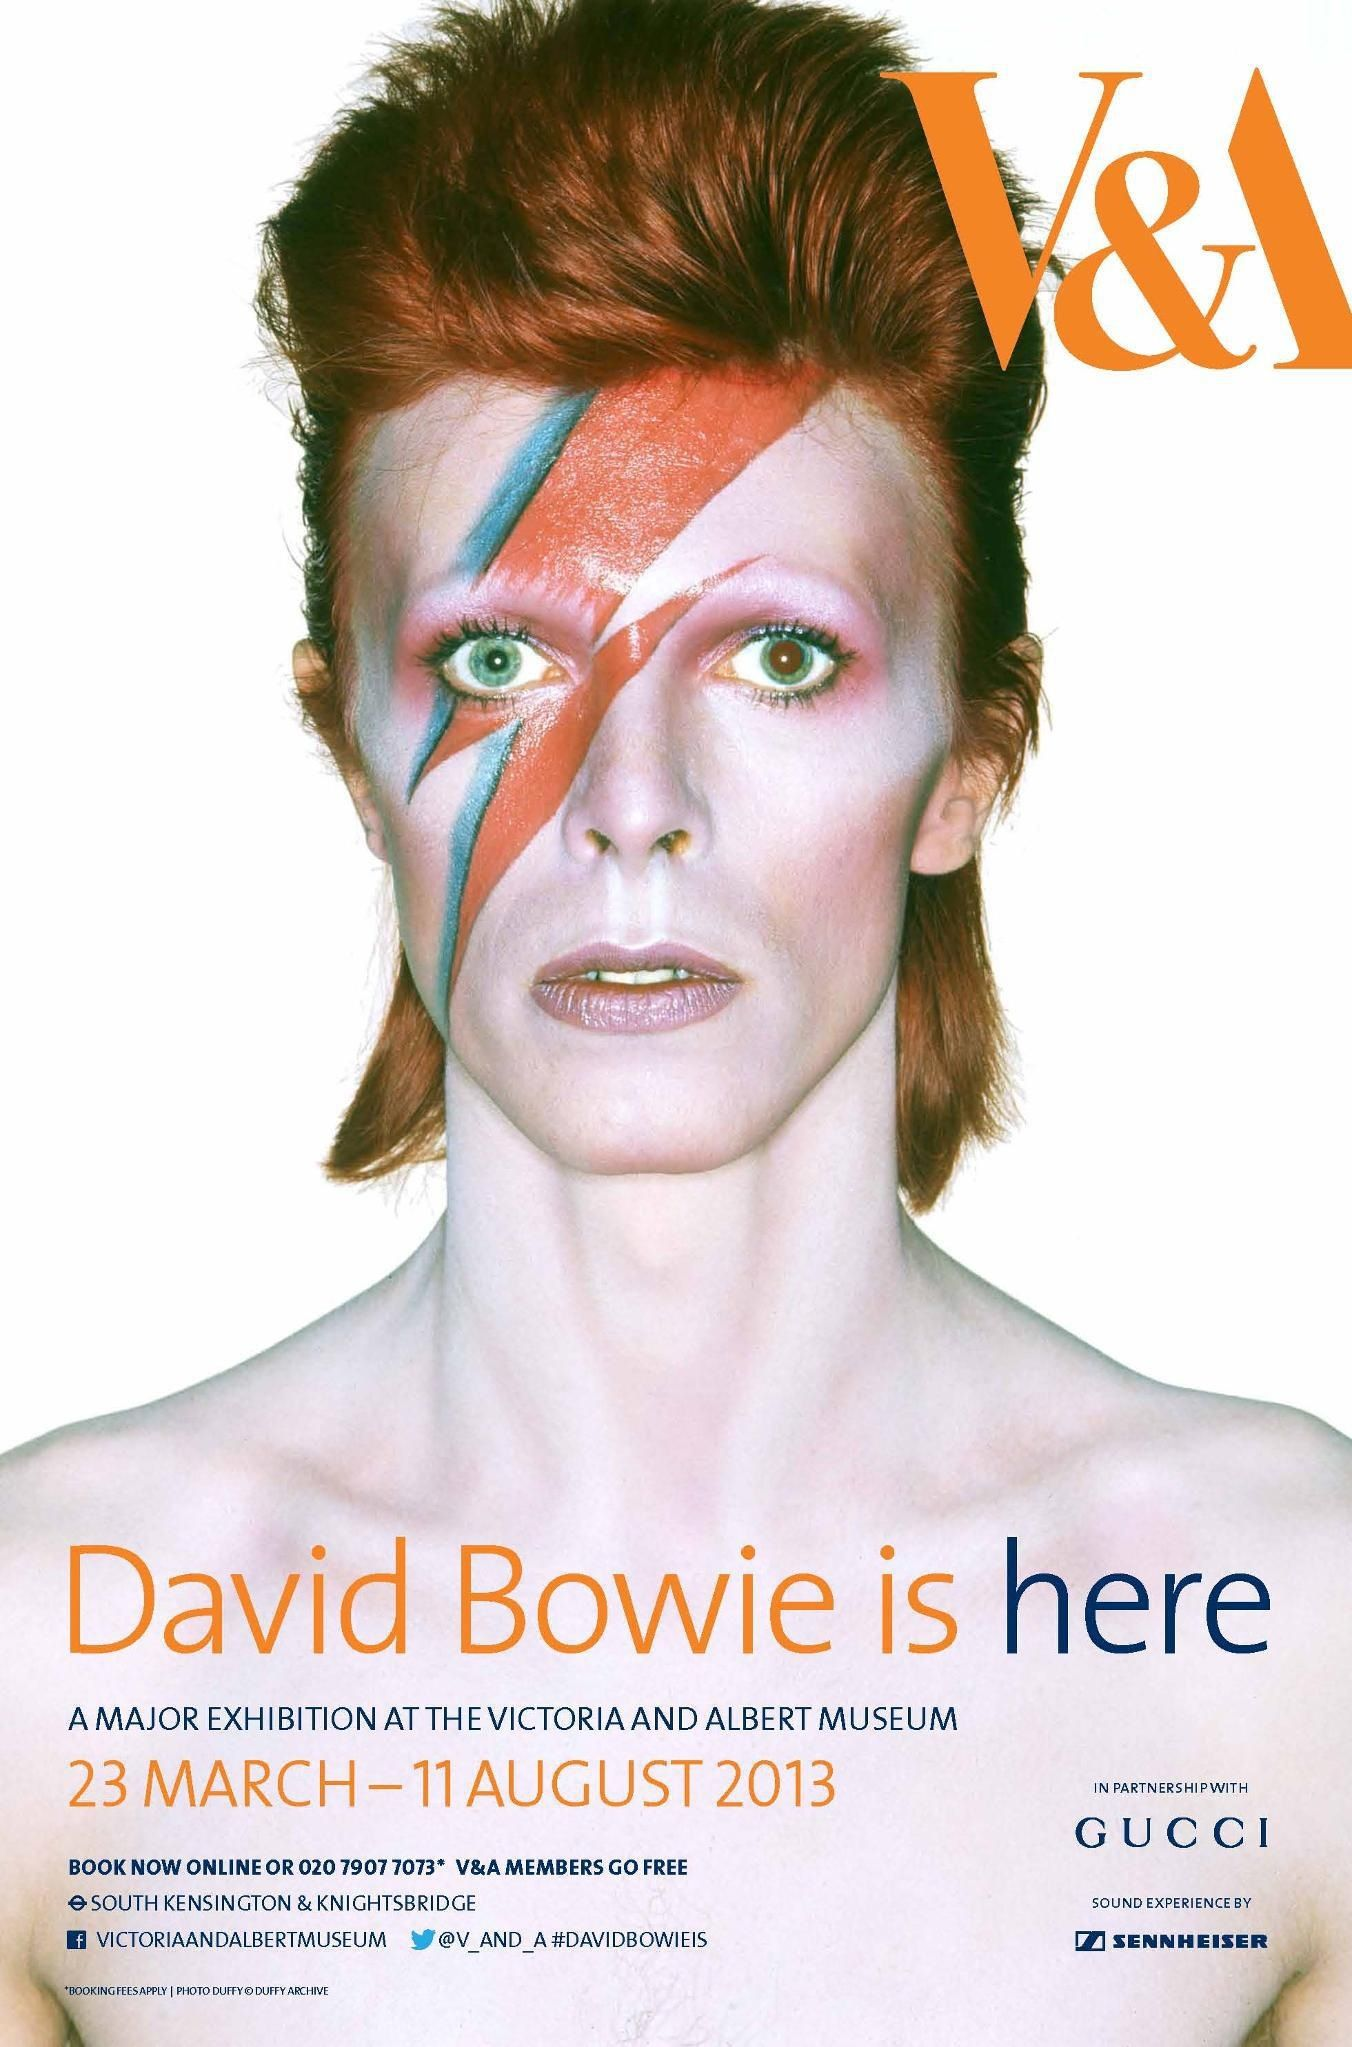 David Bowie is, Victoria & Albert Museum, London